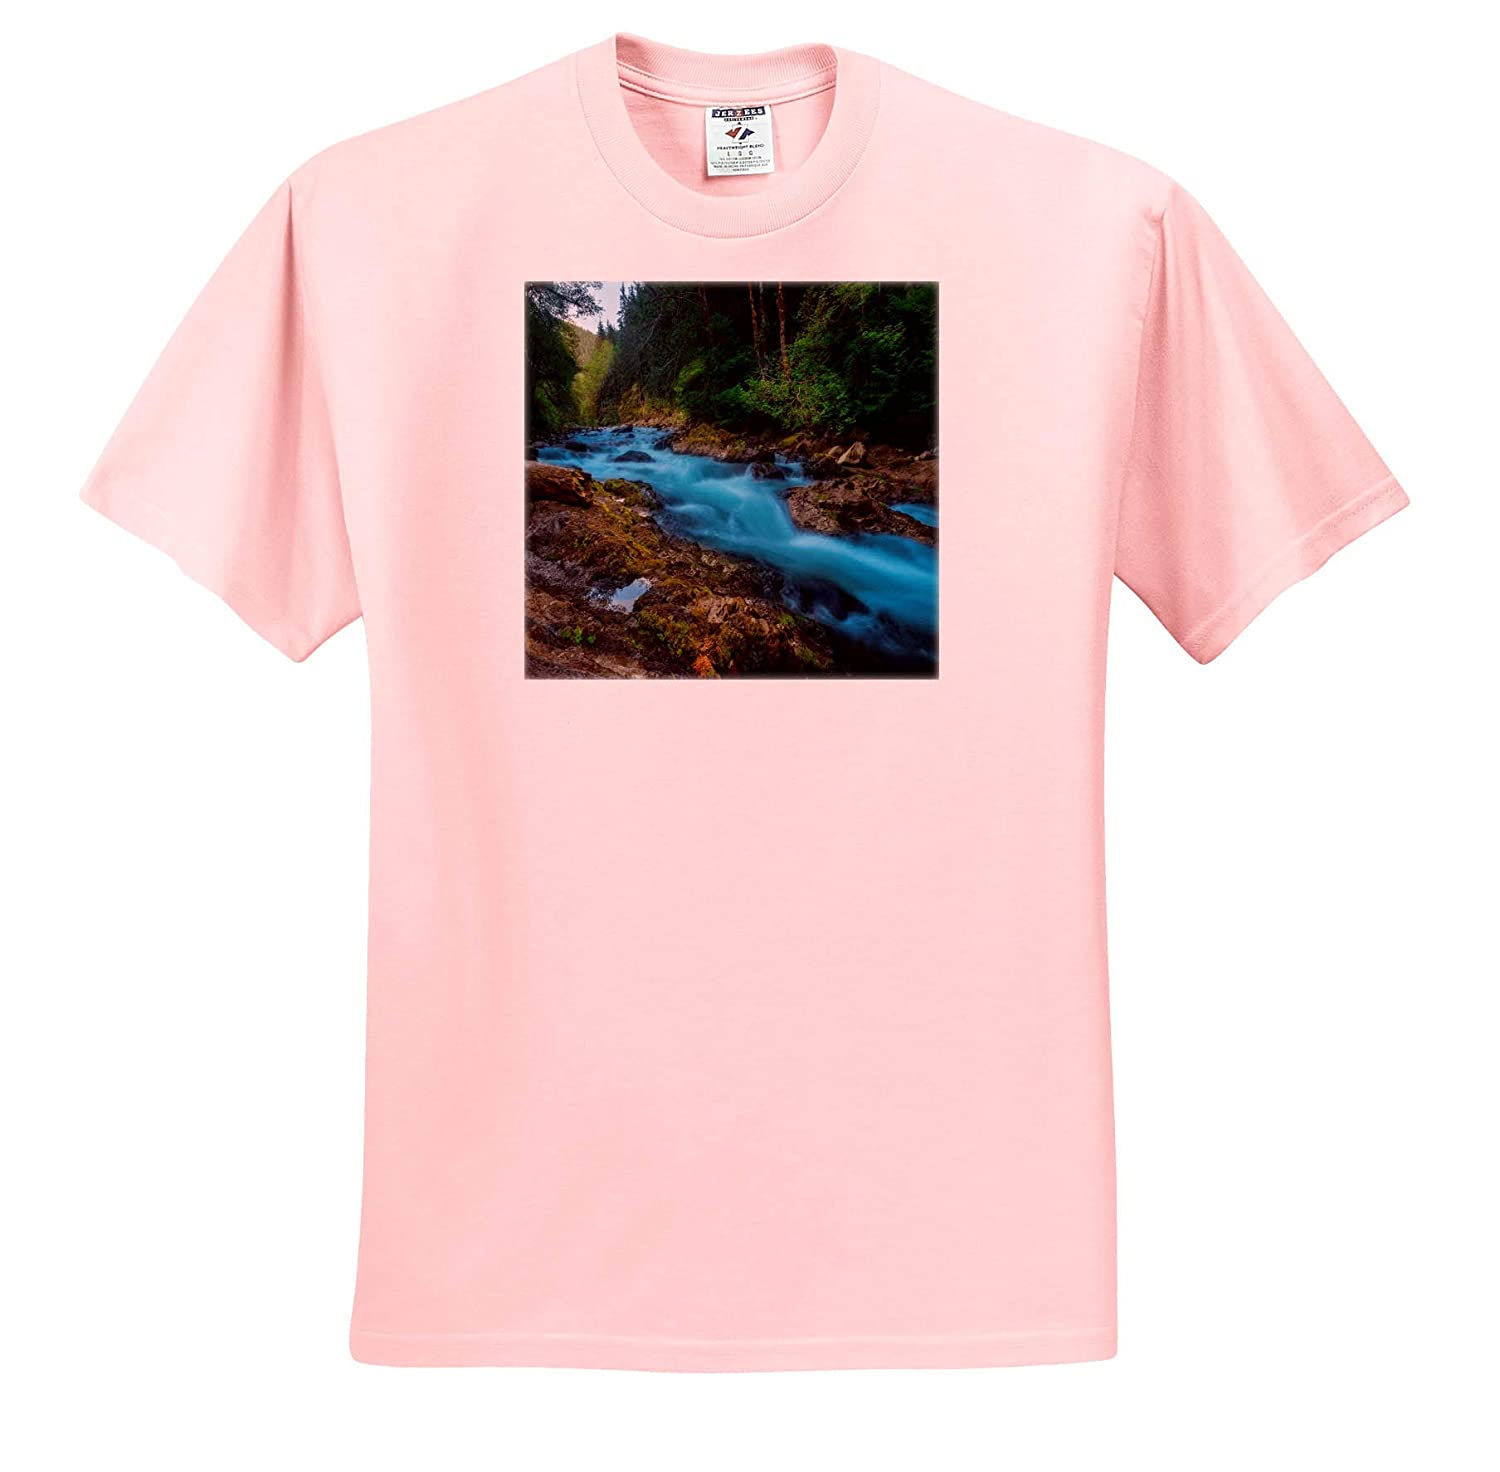 ts/_309070 3dRose Mike Swindle Photography Adult T-Shirt XL Landscapes River Flowing Through Green Forest